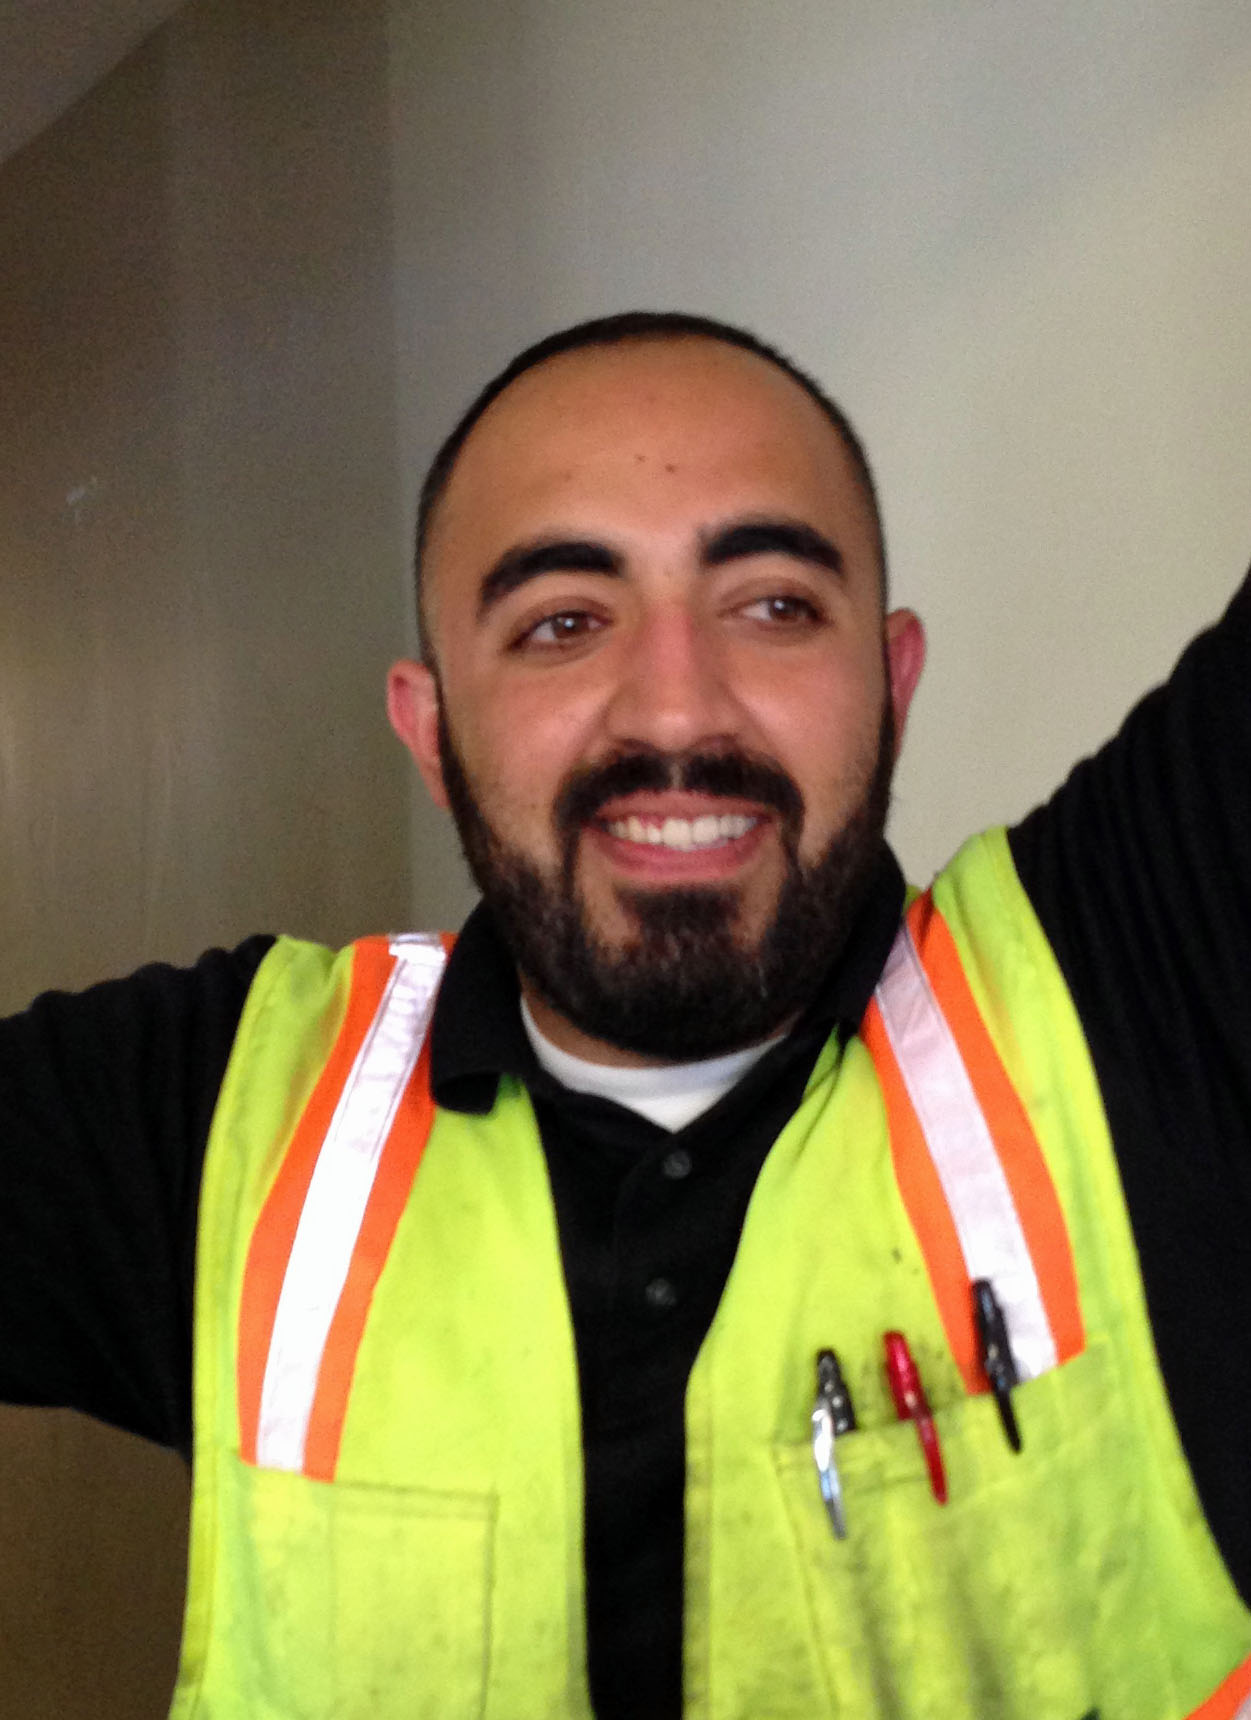 Recycling Centers Oversight Leader